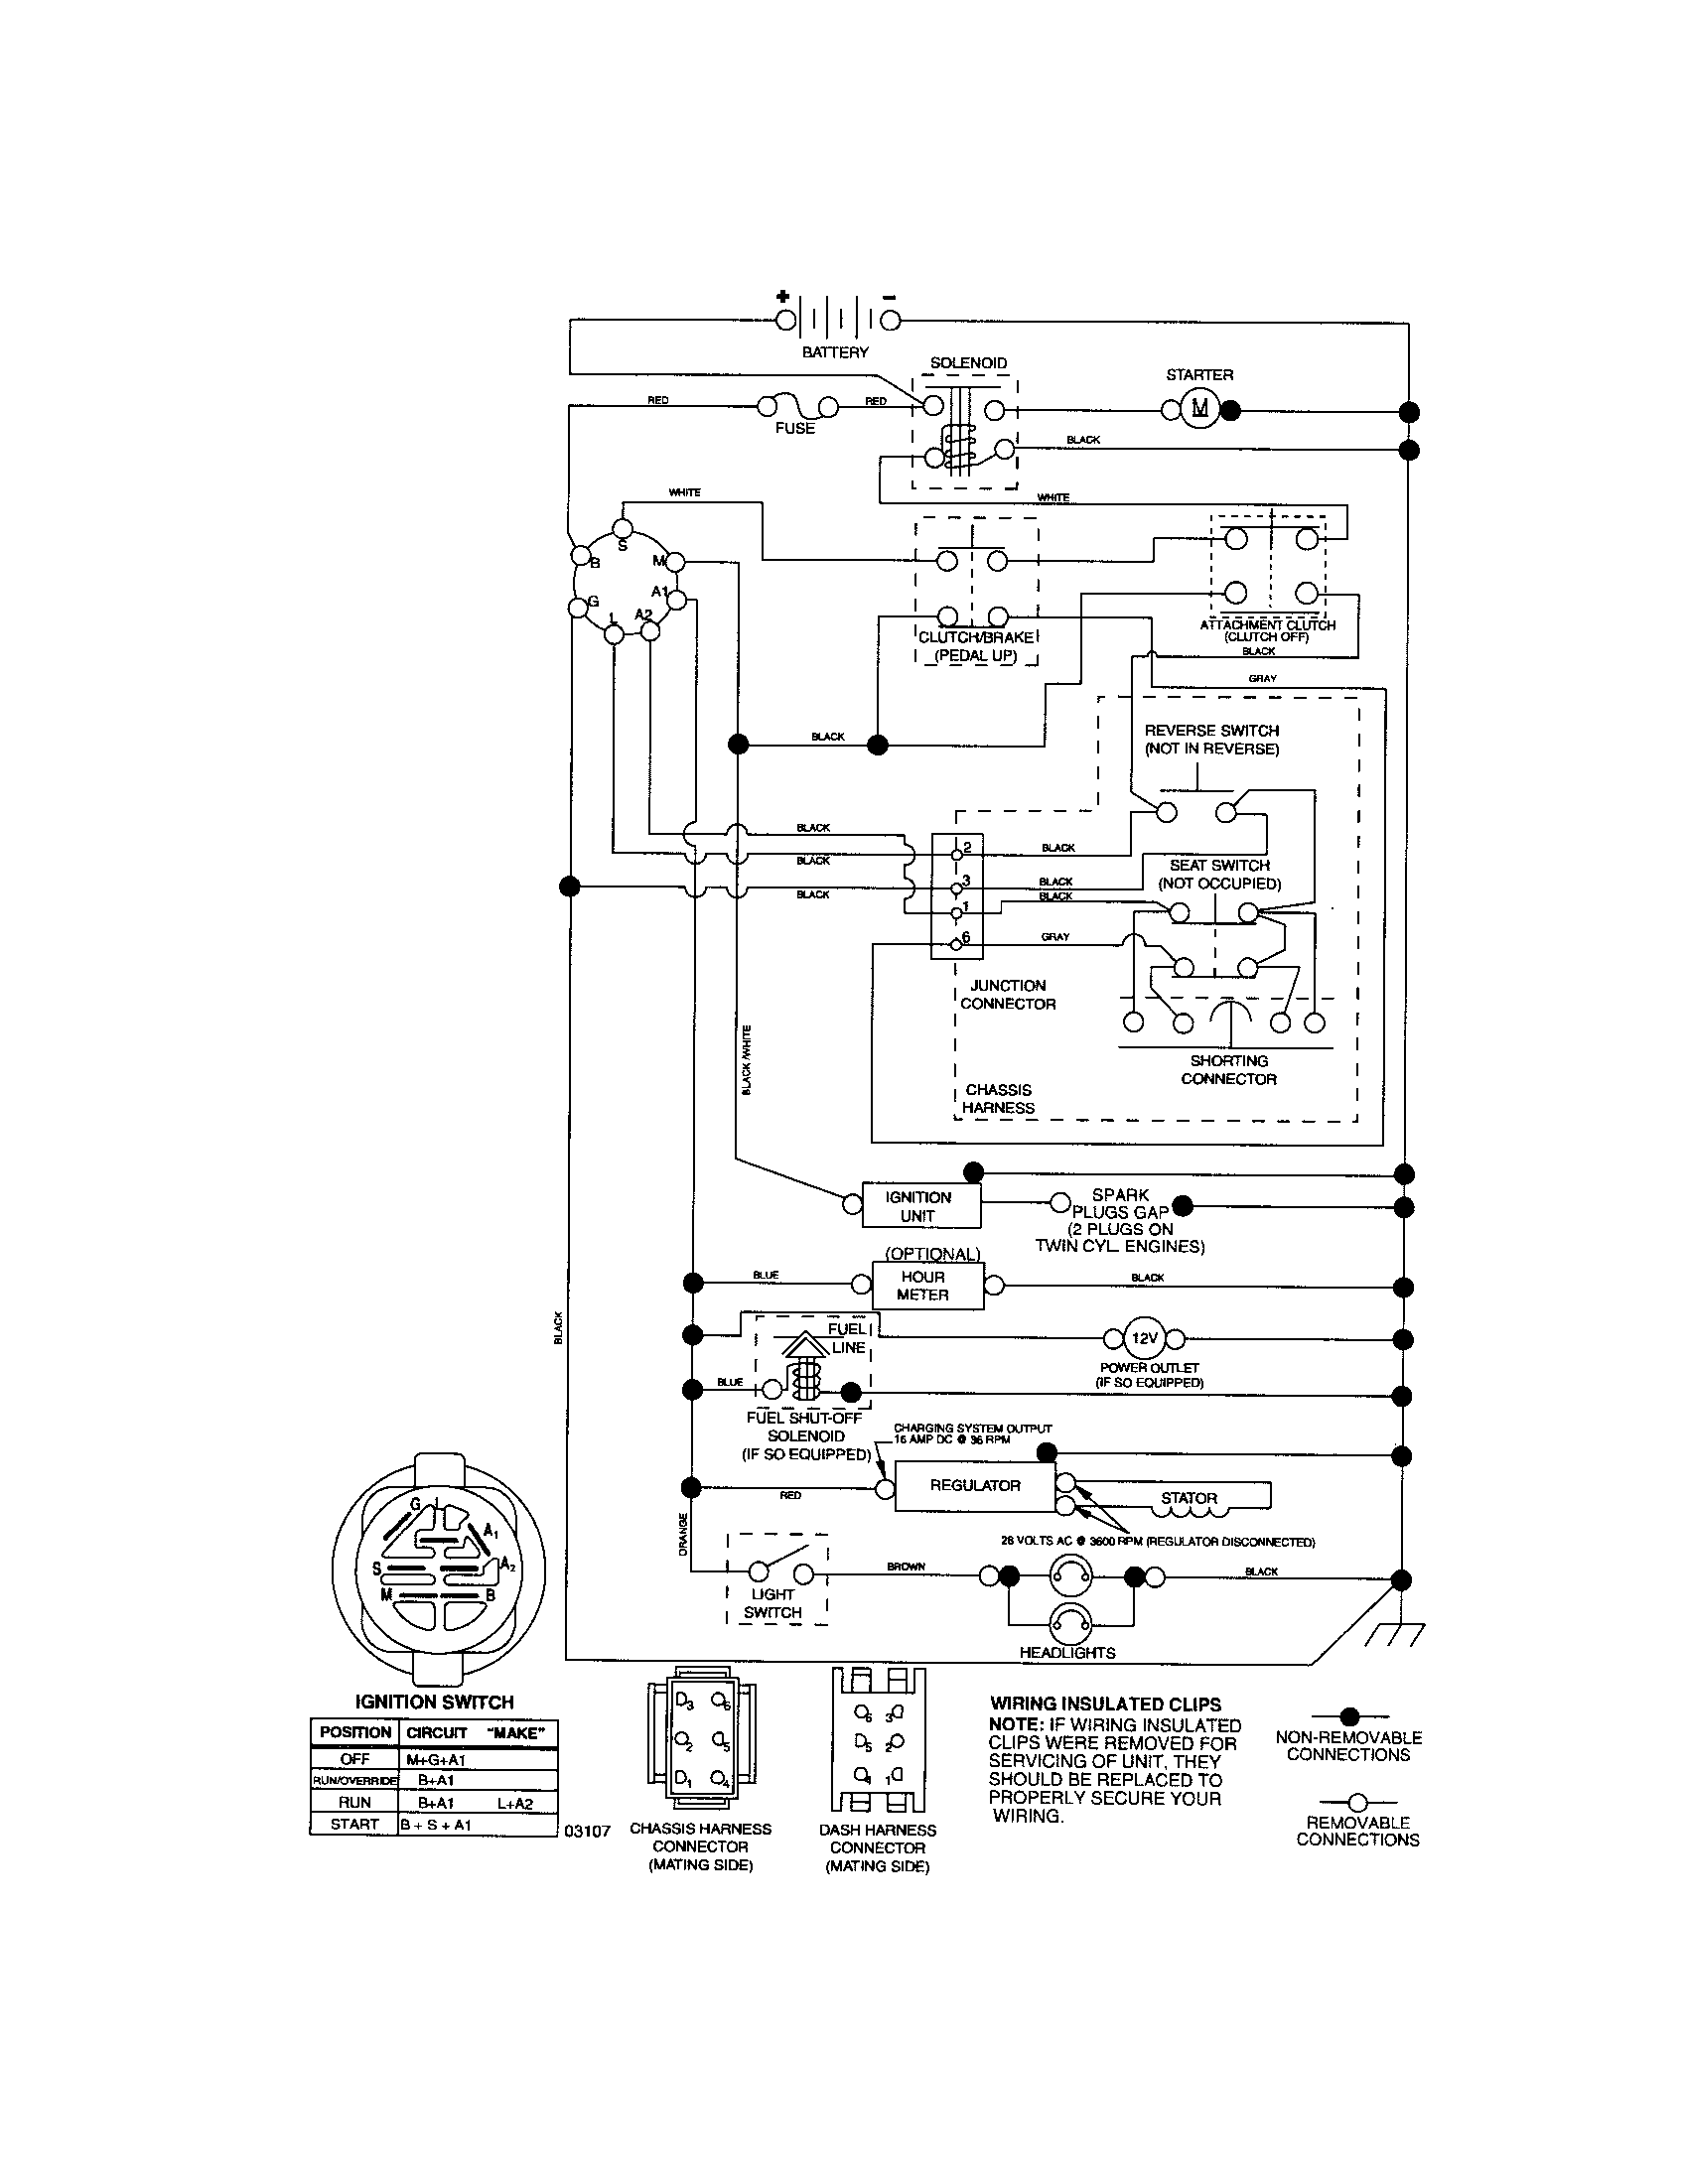 6af5f1447fd13c8443376822ddc1e105 craftsman riding mower electrical diagram wiring diagram craftsman riding mower wiring diagram at creativeand.co